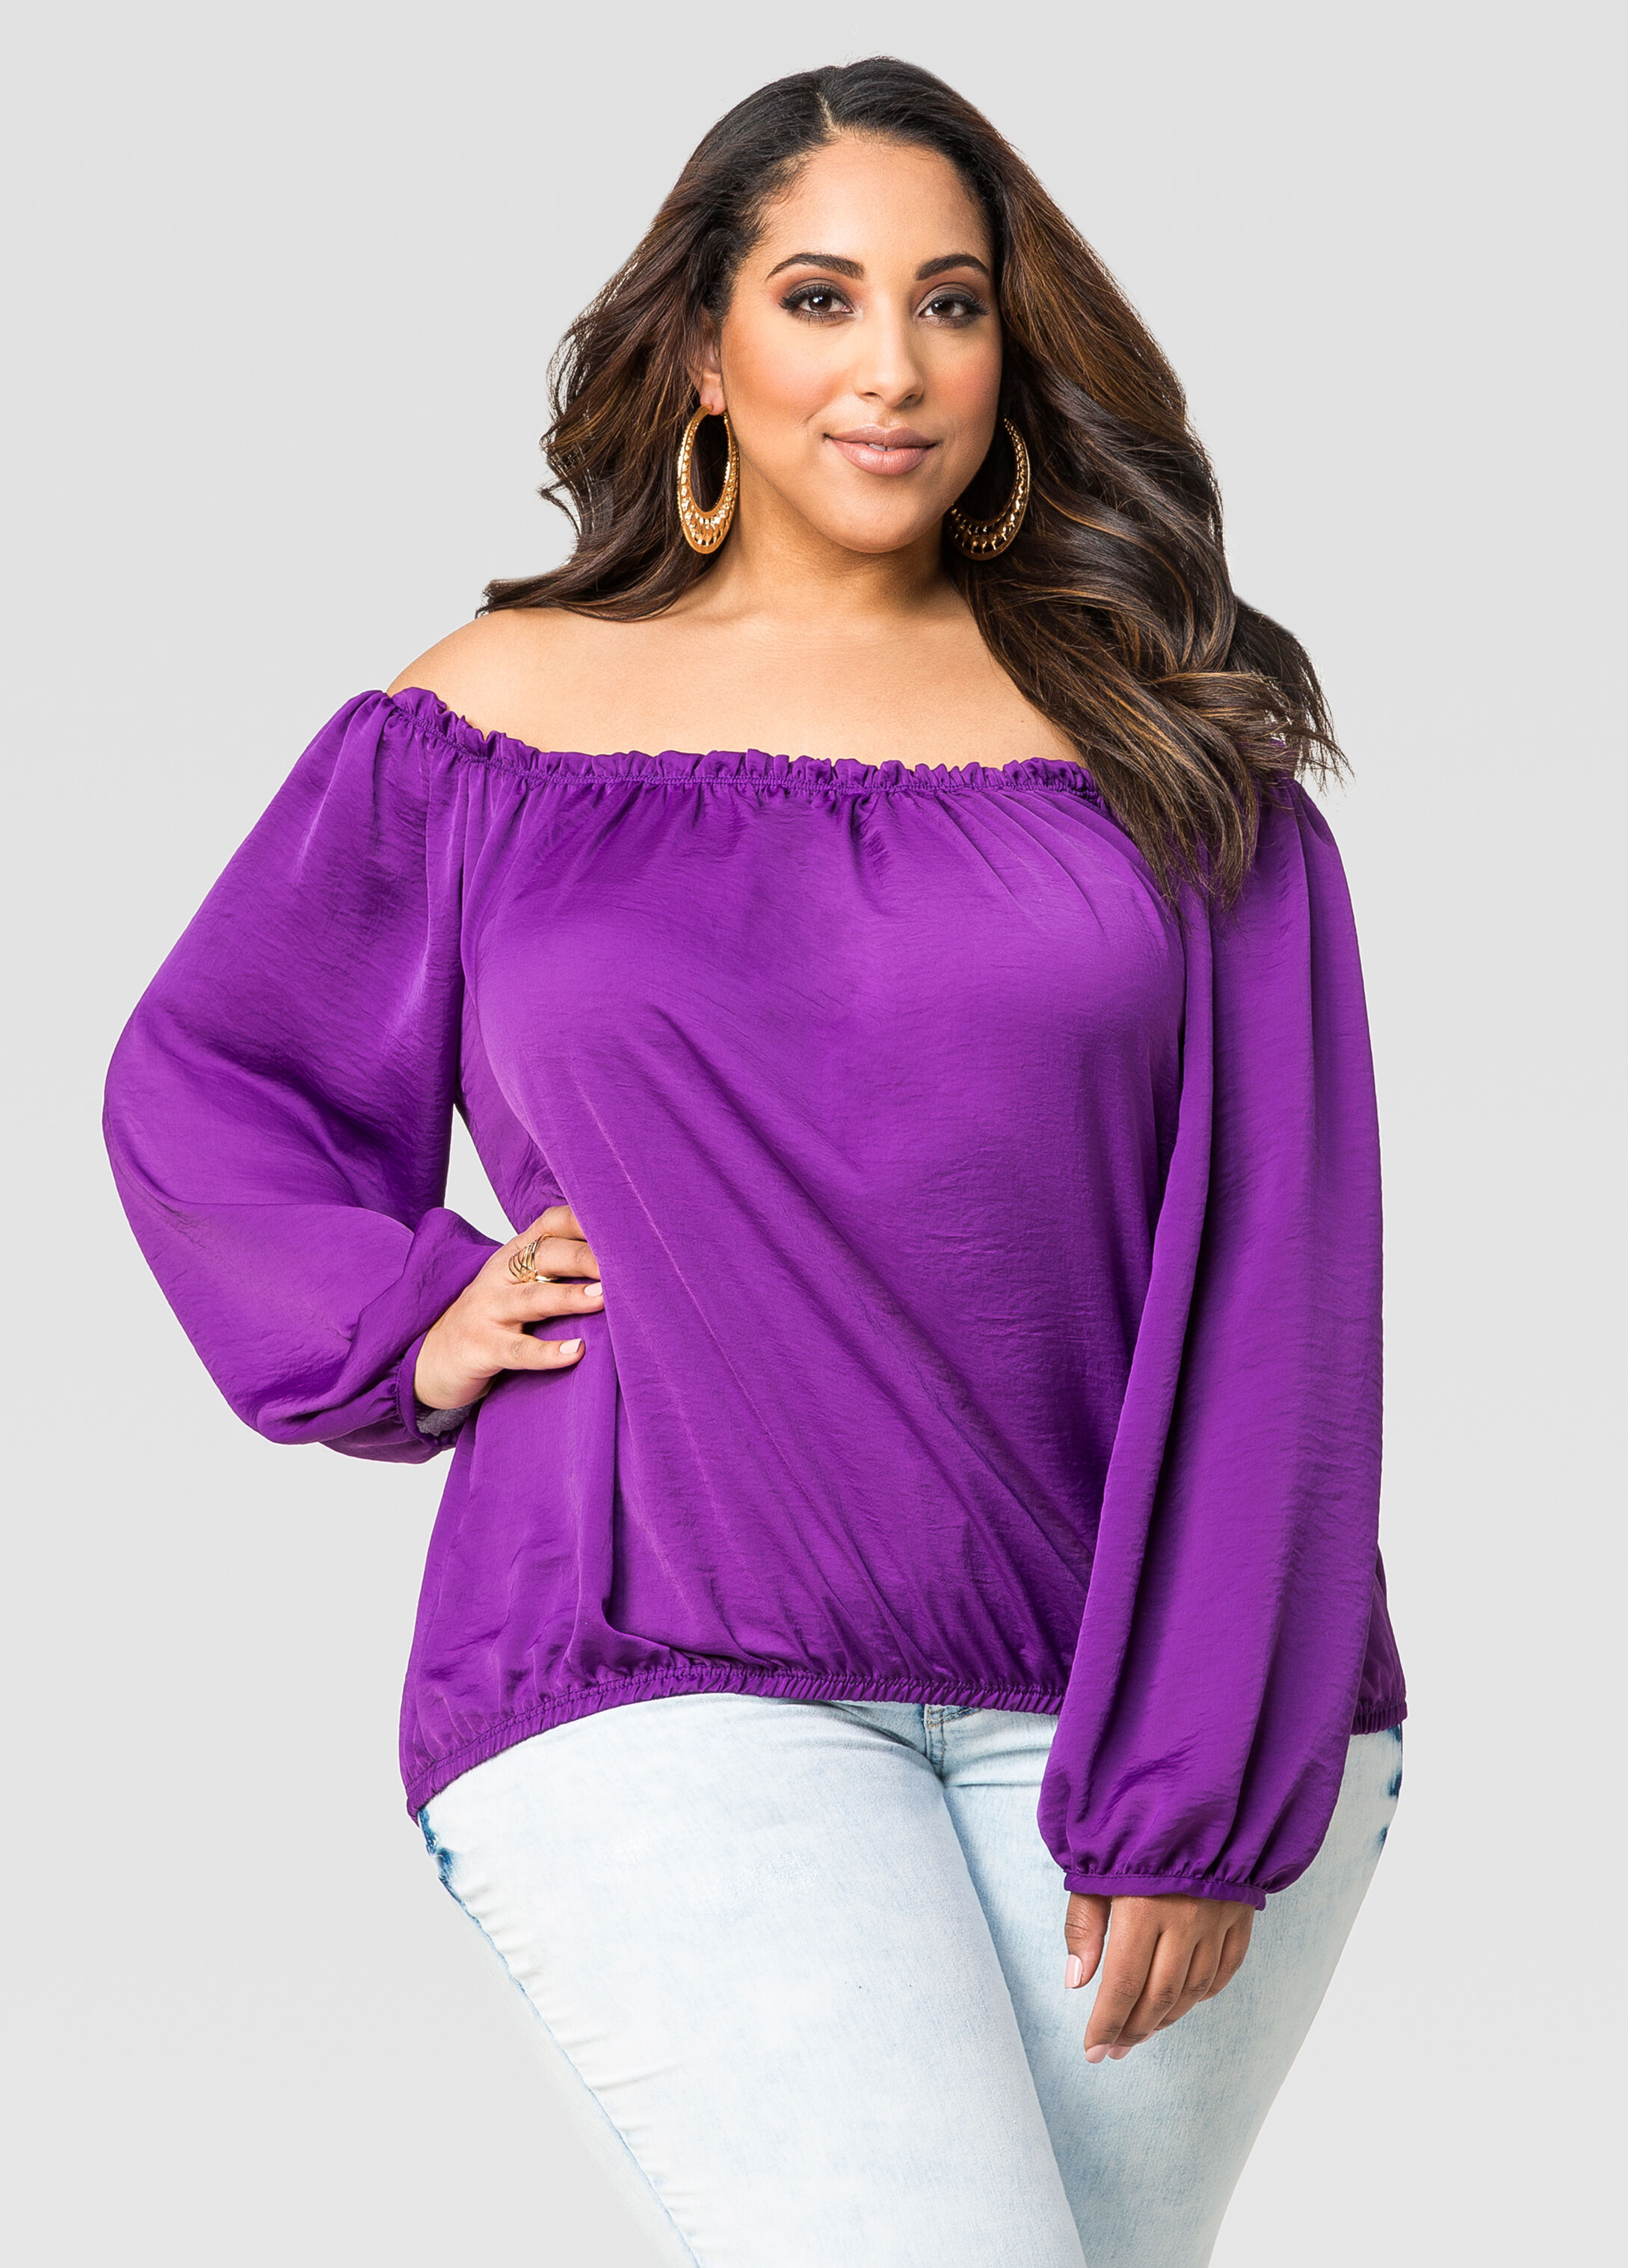 Satin Blouse Plus Size